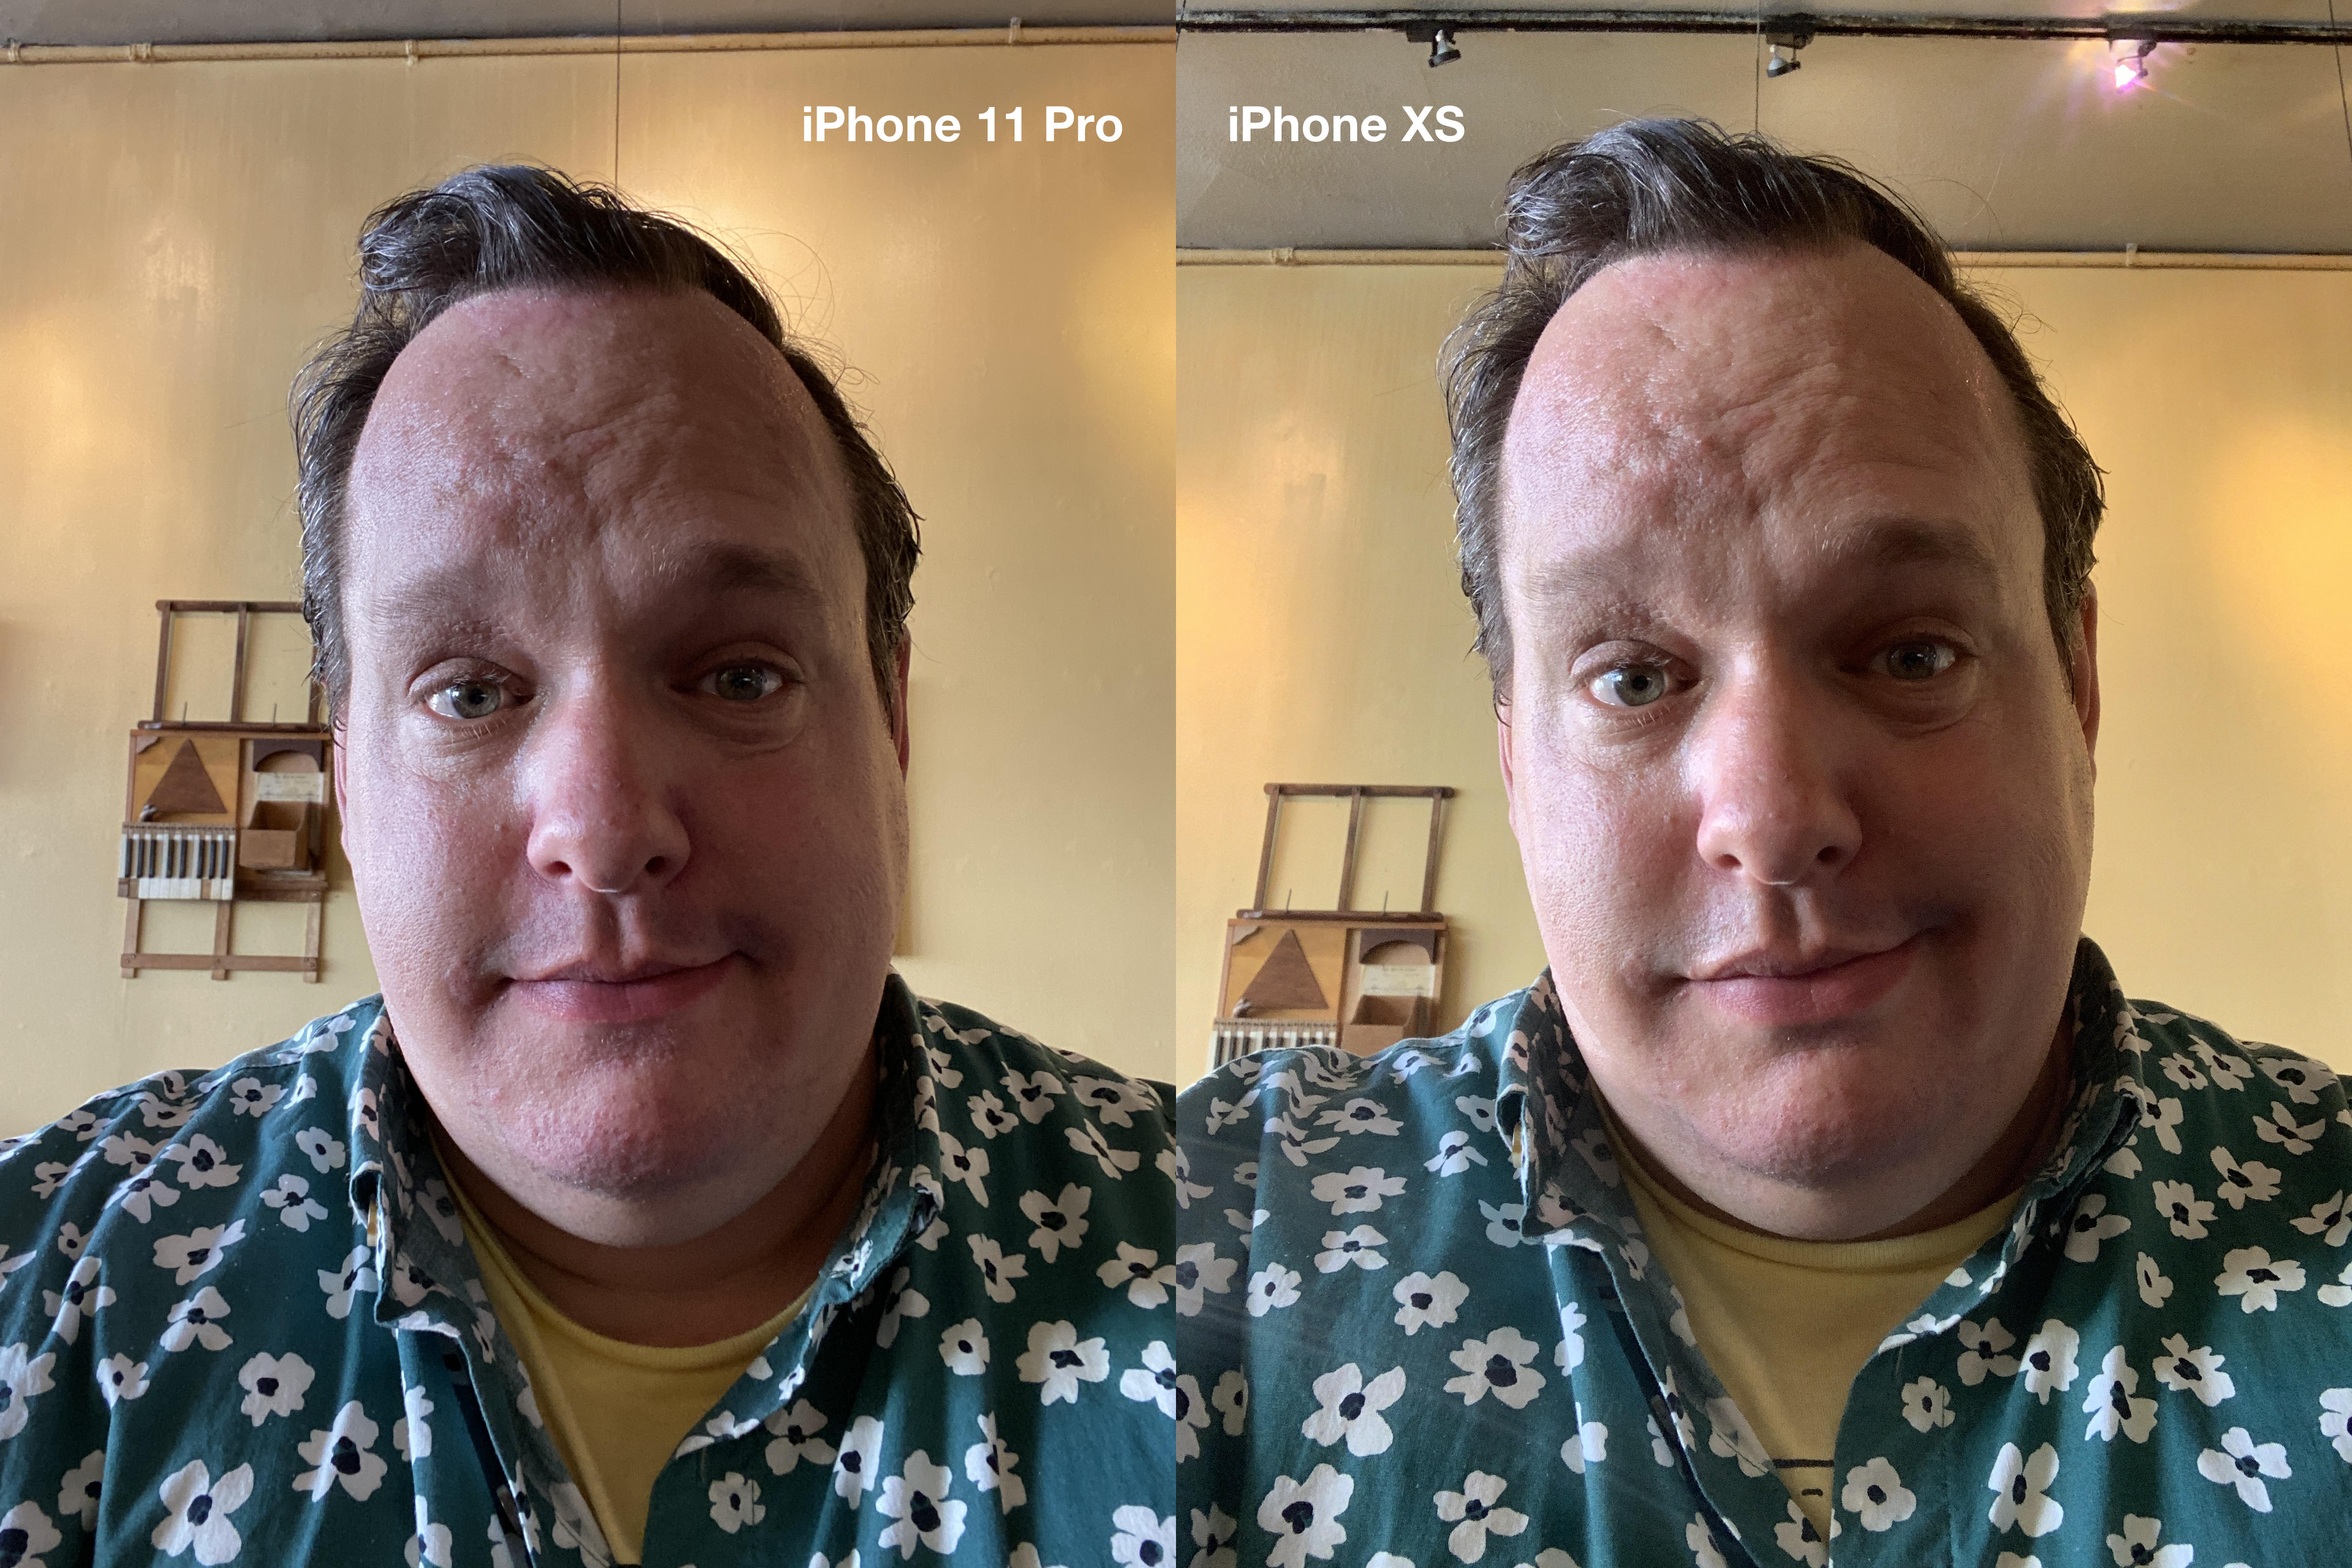 iphone-11-pro-and-xs-selfie-compare